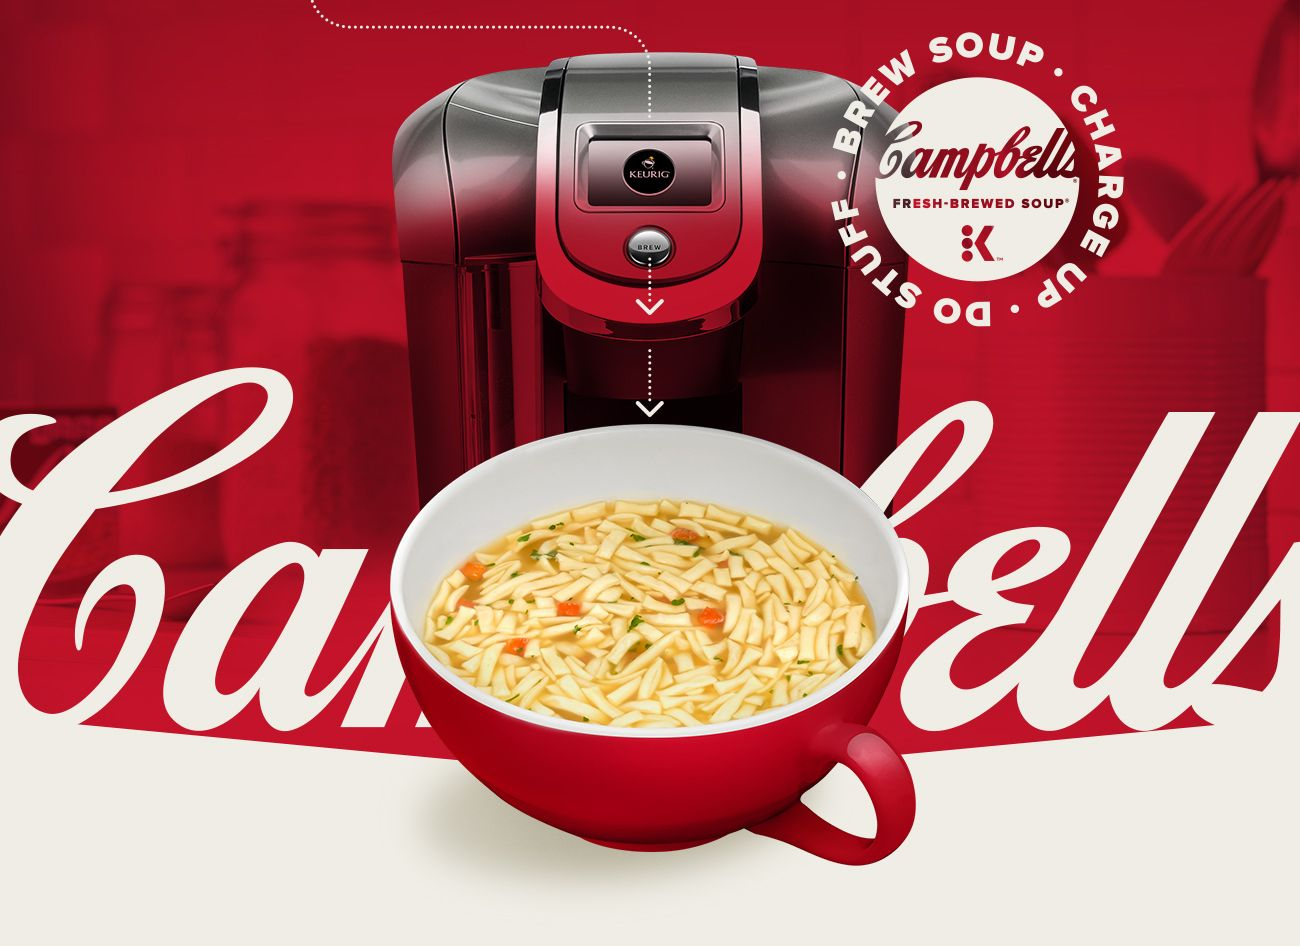 photograph regarding Noodles and Company Printable Coupons called Campbells Contemporary-Brewed Soup peculiar Campbell soup organization